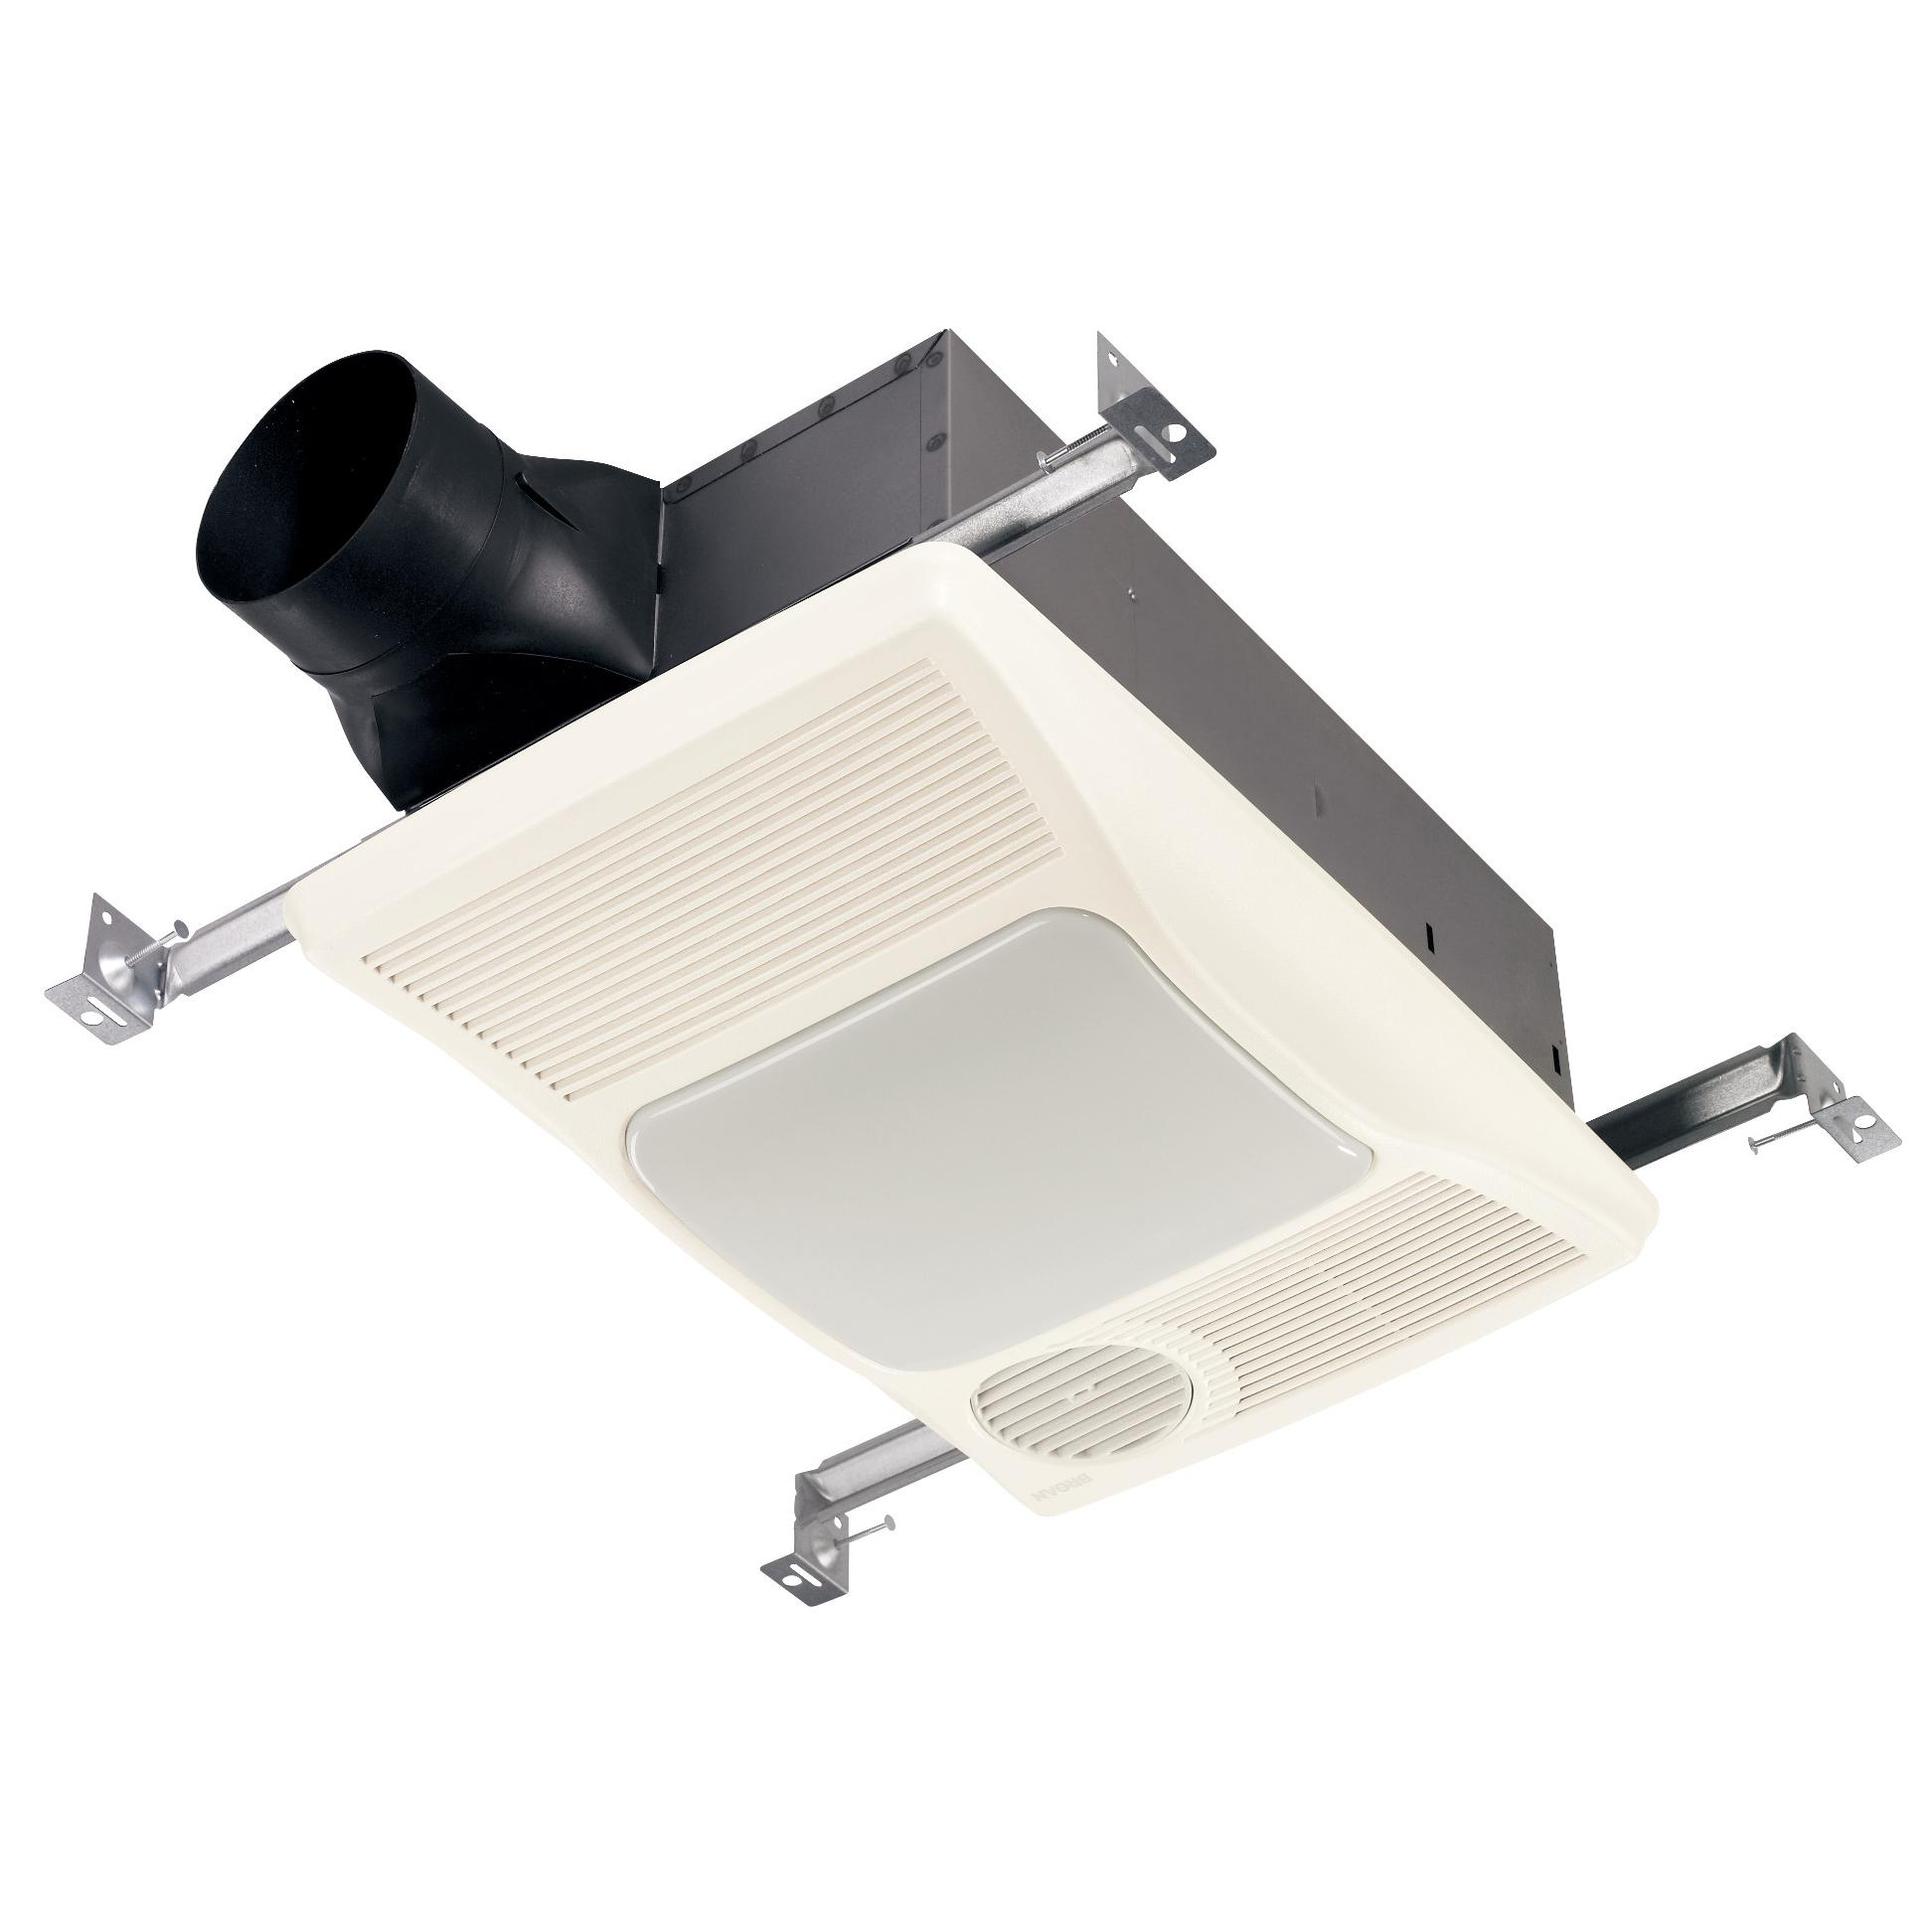 BROAN 100HL Directionally-Adjustable Bath Fan with Heater and Incandescent Light.  sc 1 st  Amazon.com & Amazon.com: Broan 100HL Directionally-Adjustable Bath Fan with ...